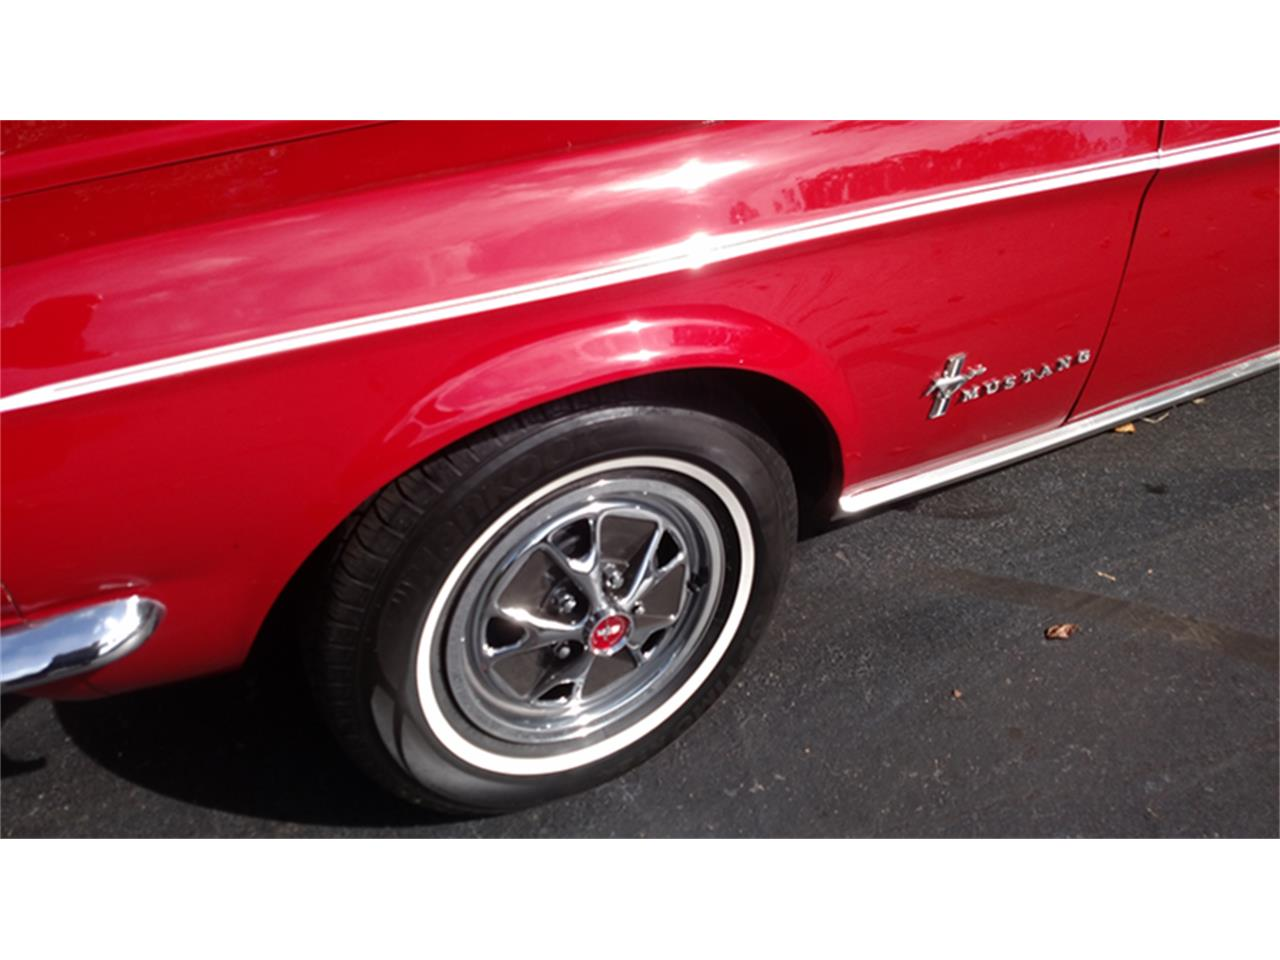 Large Picture of Classic '67 Mustang - $15,900.00 Offered by Old Town Automobile - M763